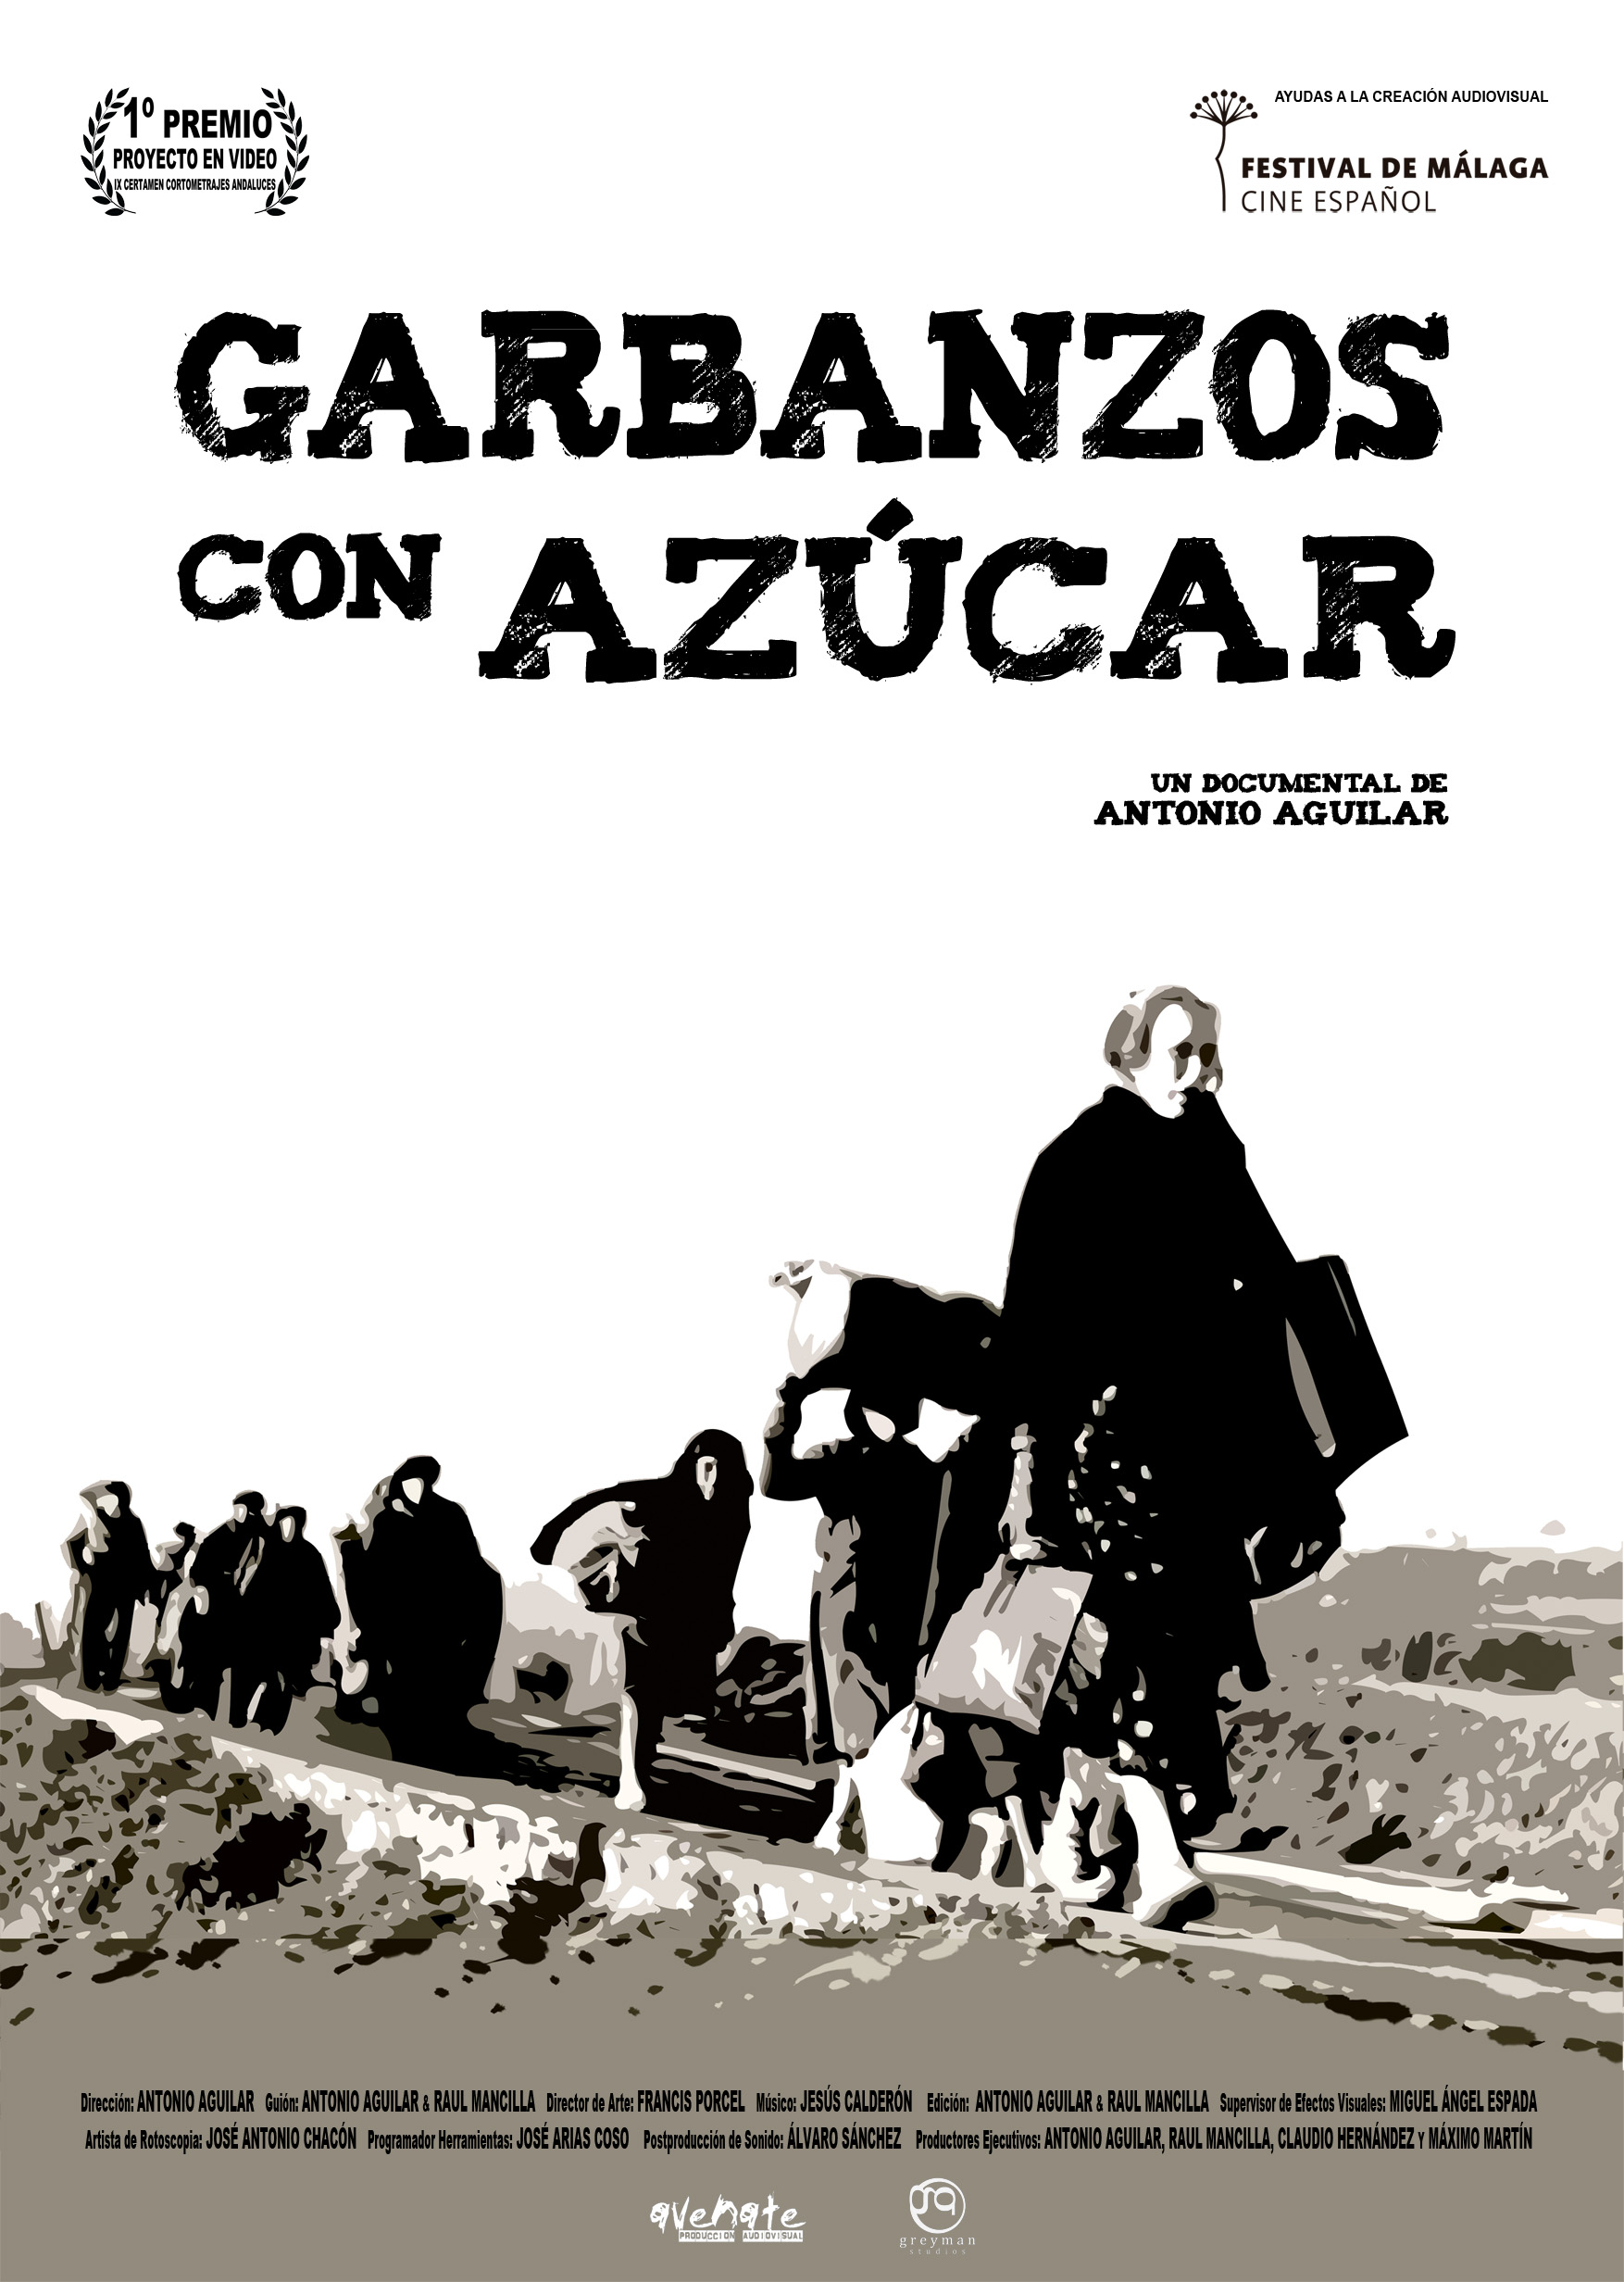 Garbanzos con azúcar. Un corto documental de Antonio Aguilar